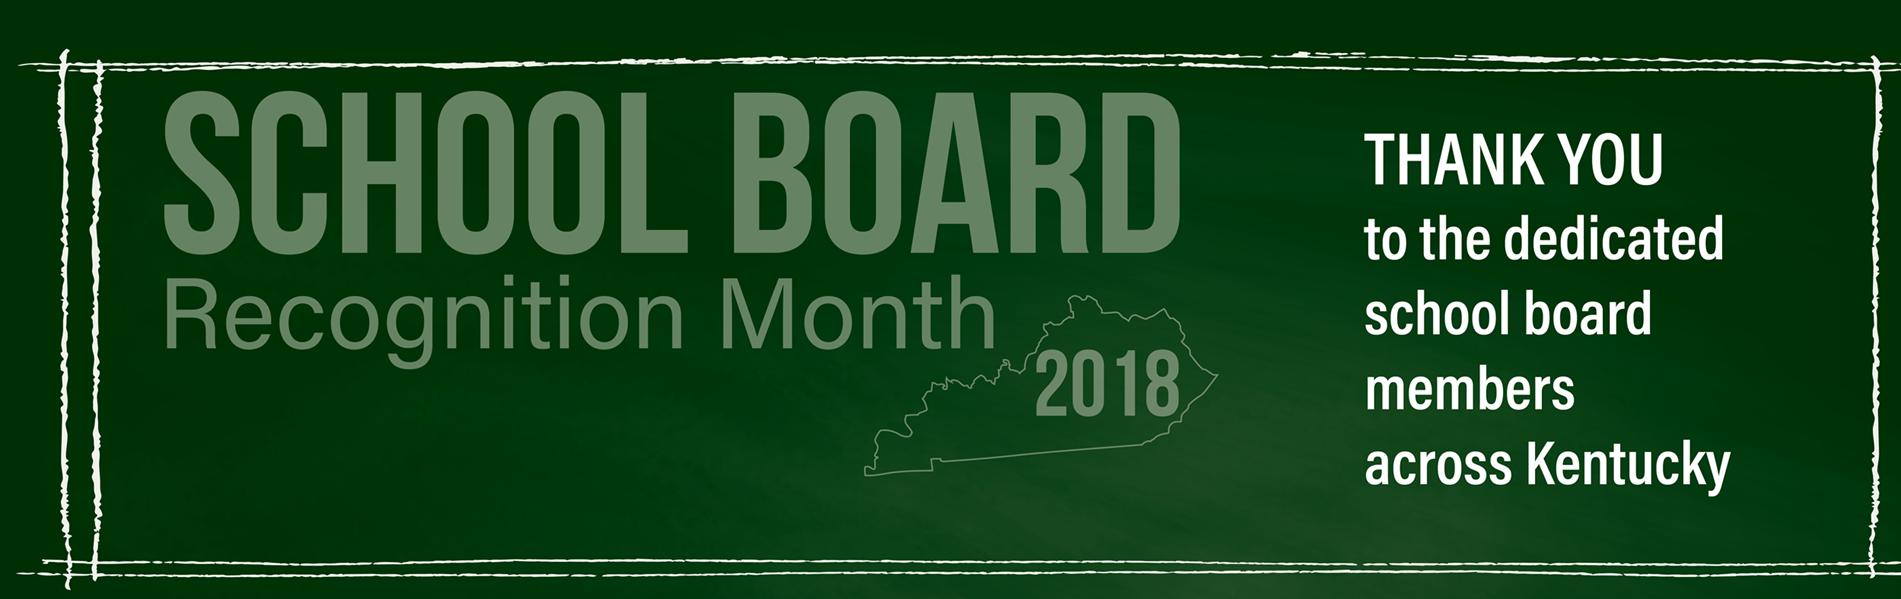 January 2018 is School Board Recognition Month